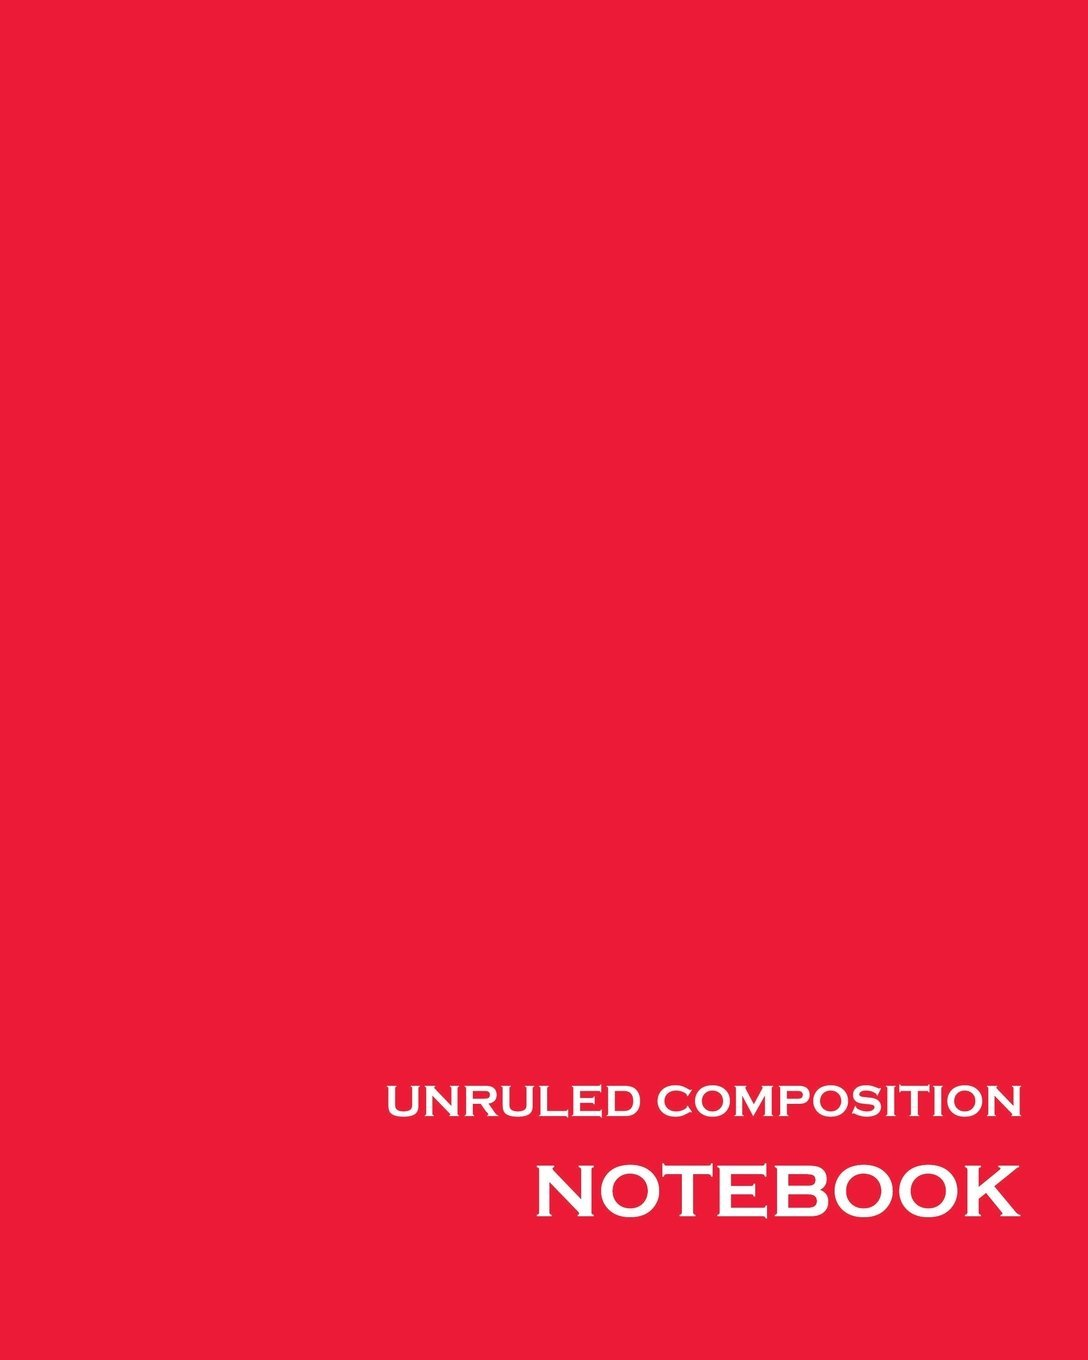 unruled composition notebook 100 unruled numbered pages 8 x 10 red unlined notebook unruled composition book unruled journal unruled for drawing writing doodling sketching